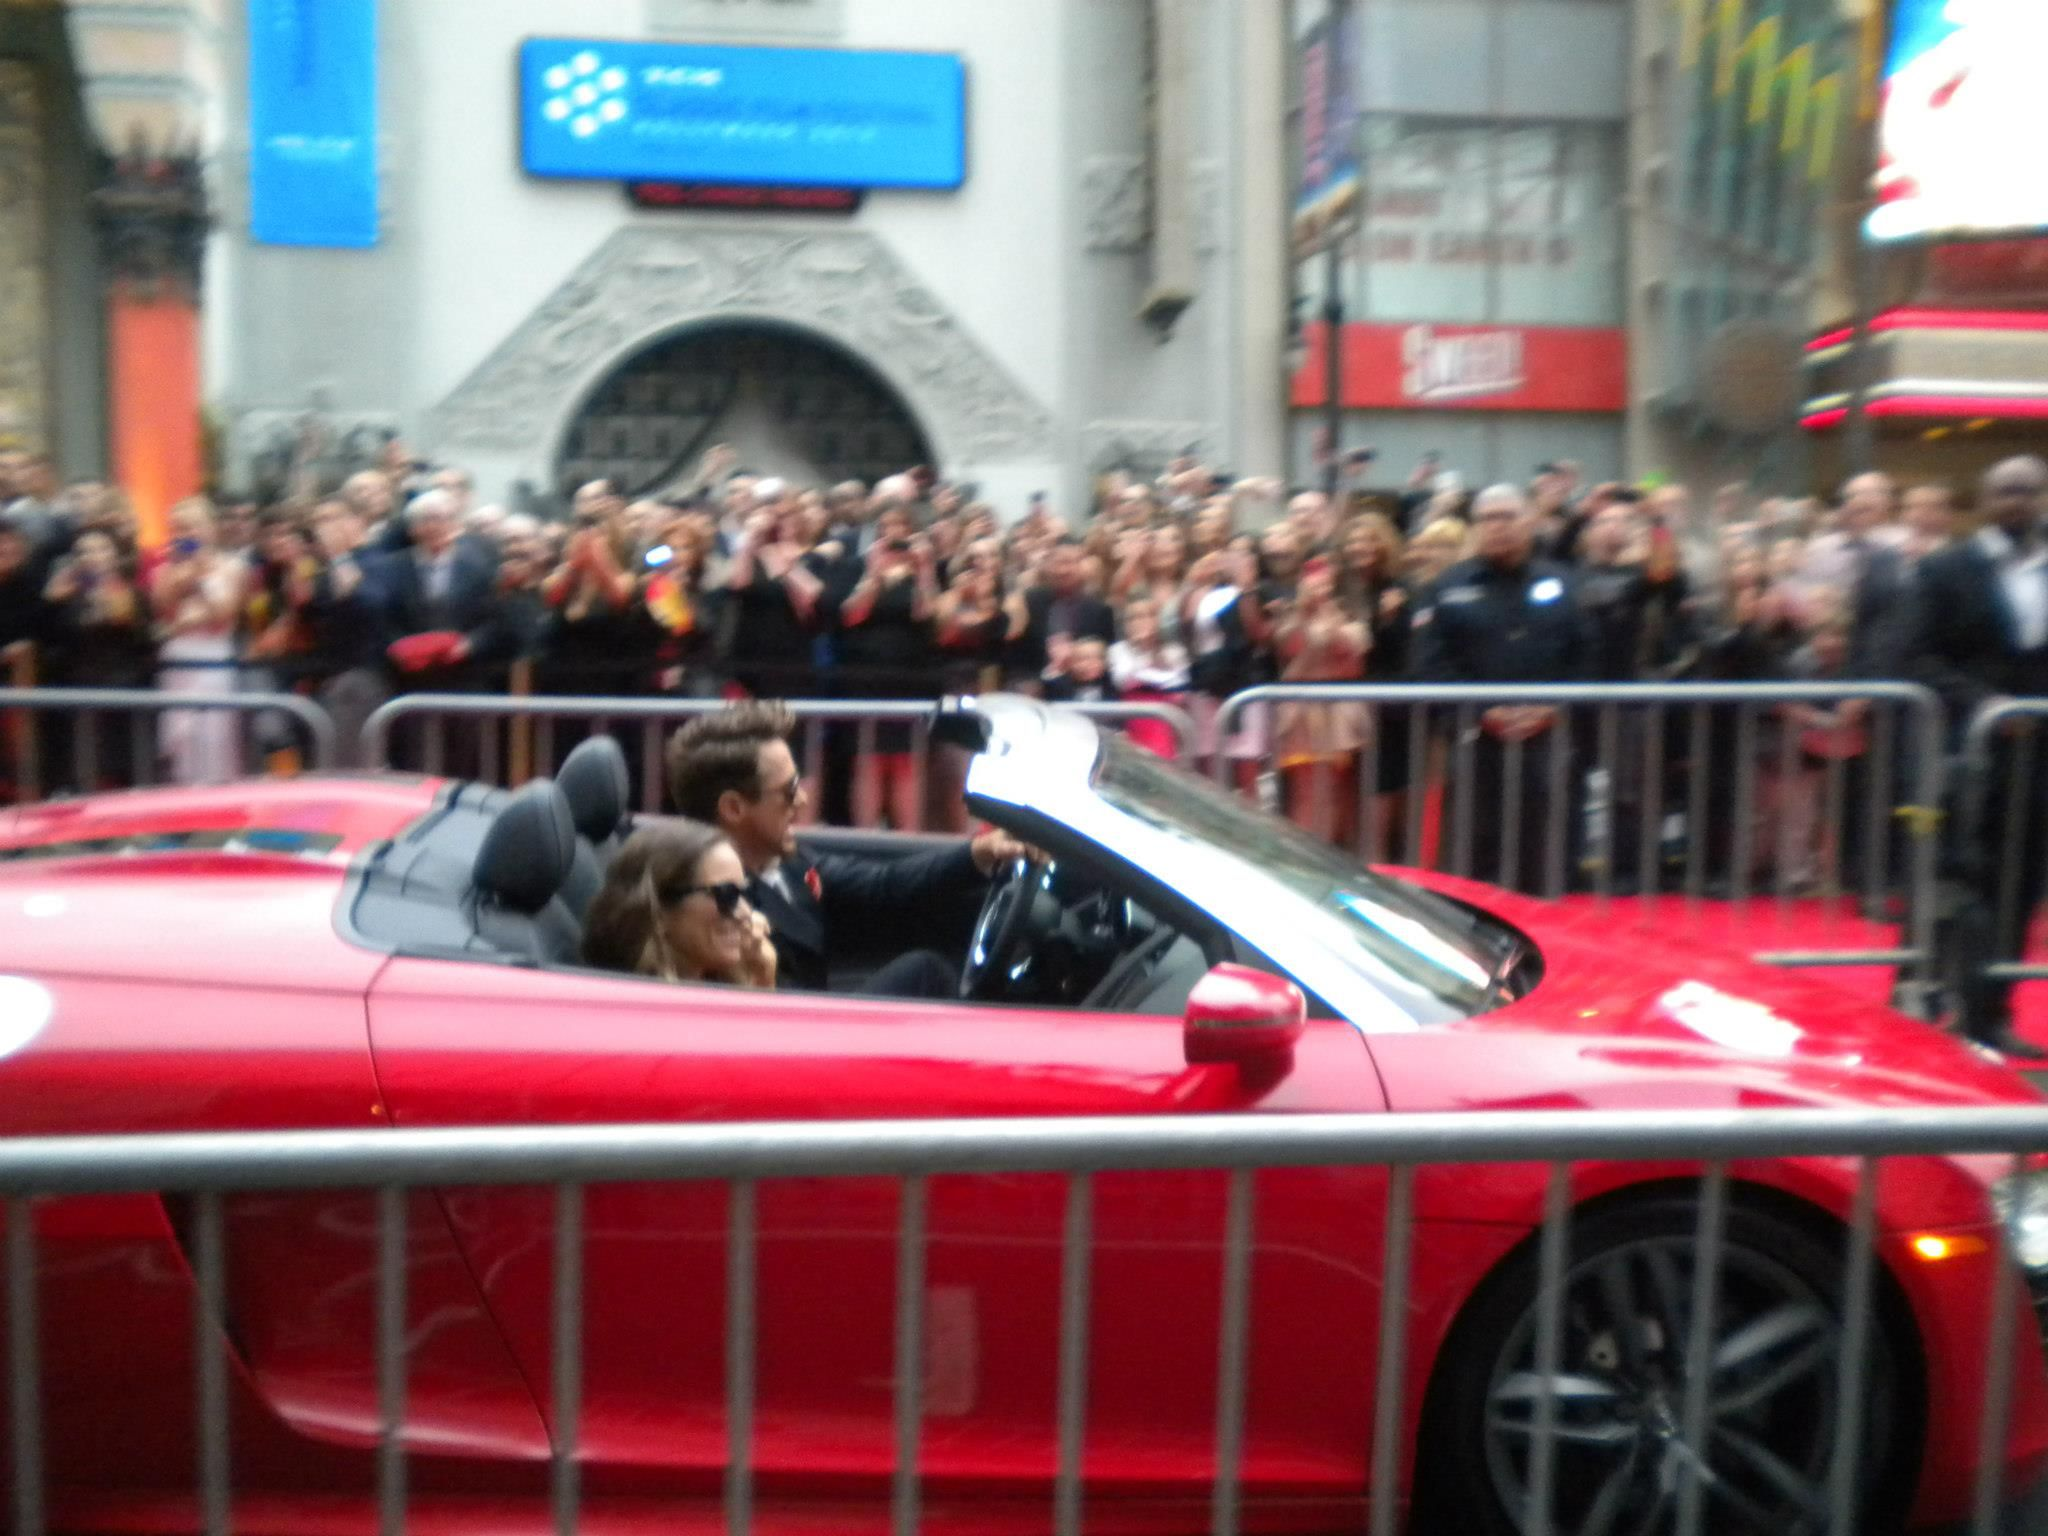 """Robert Downey Jr. and Susan Downey arrive in style at the U.S. premiere of """"Iron Man 3"""" in Hollywood."""